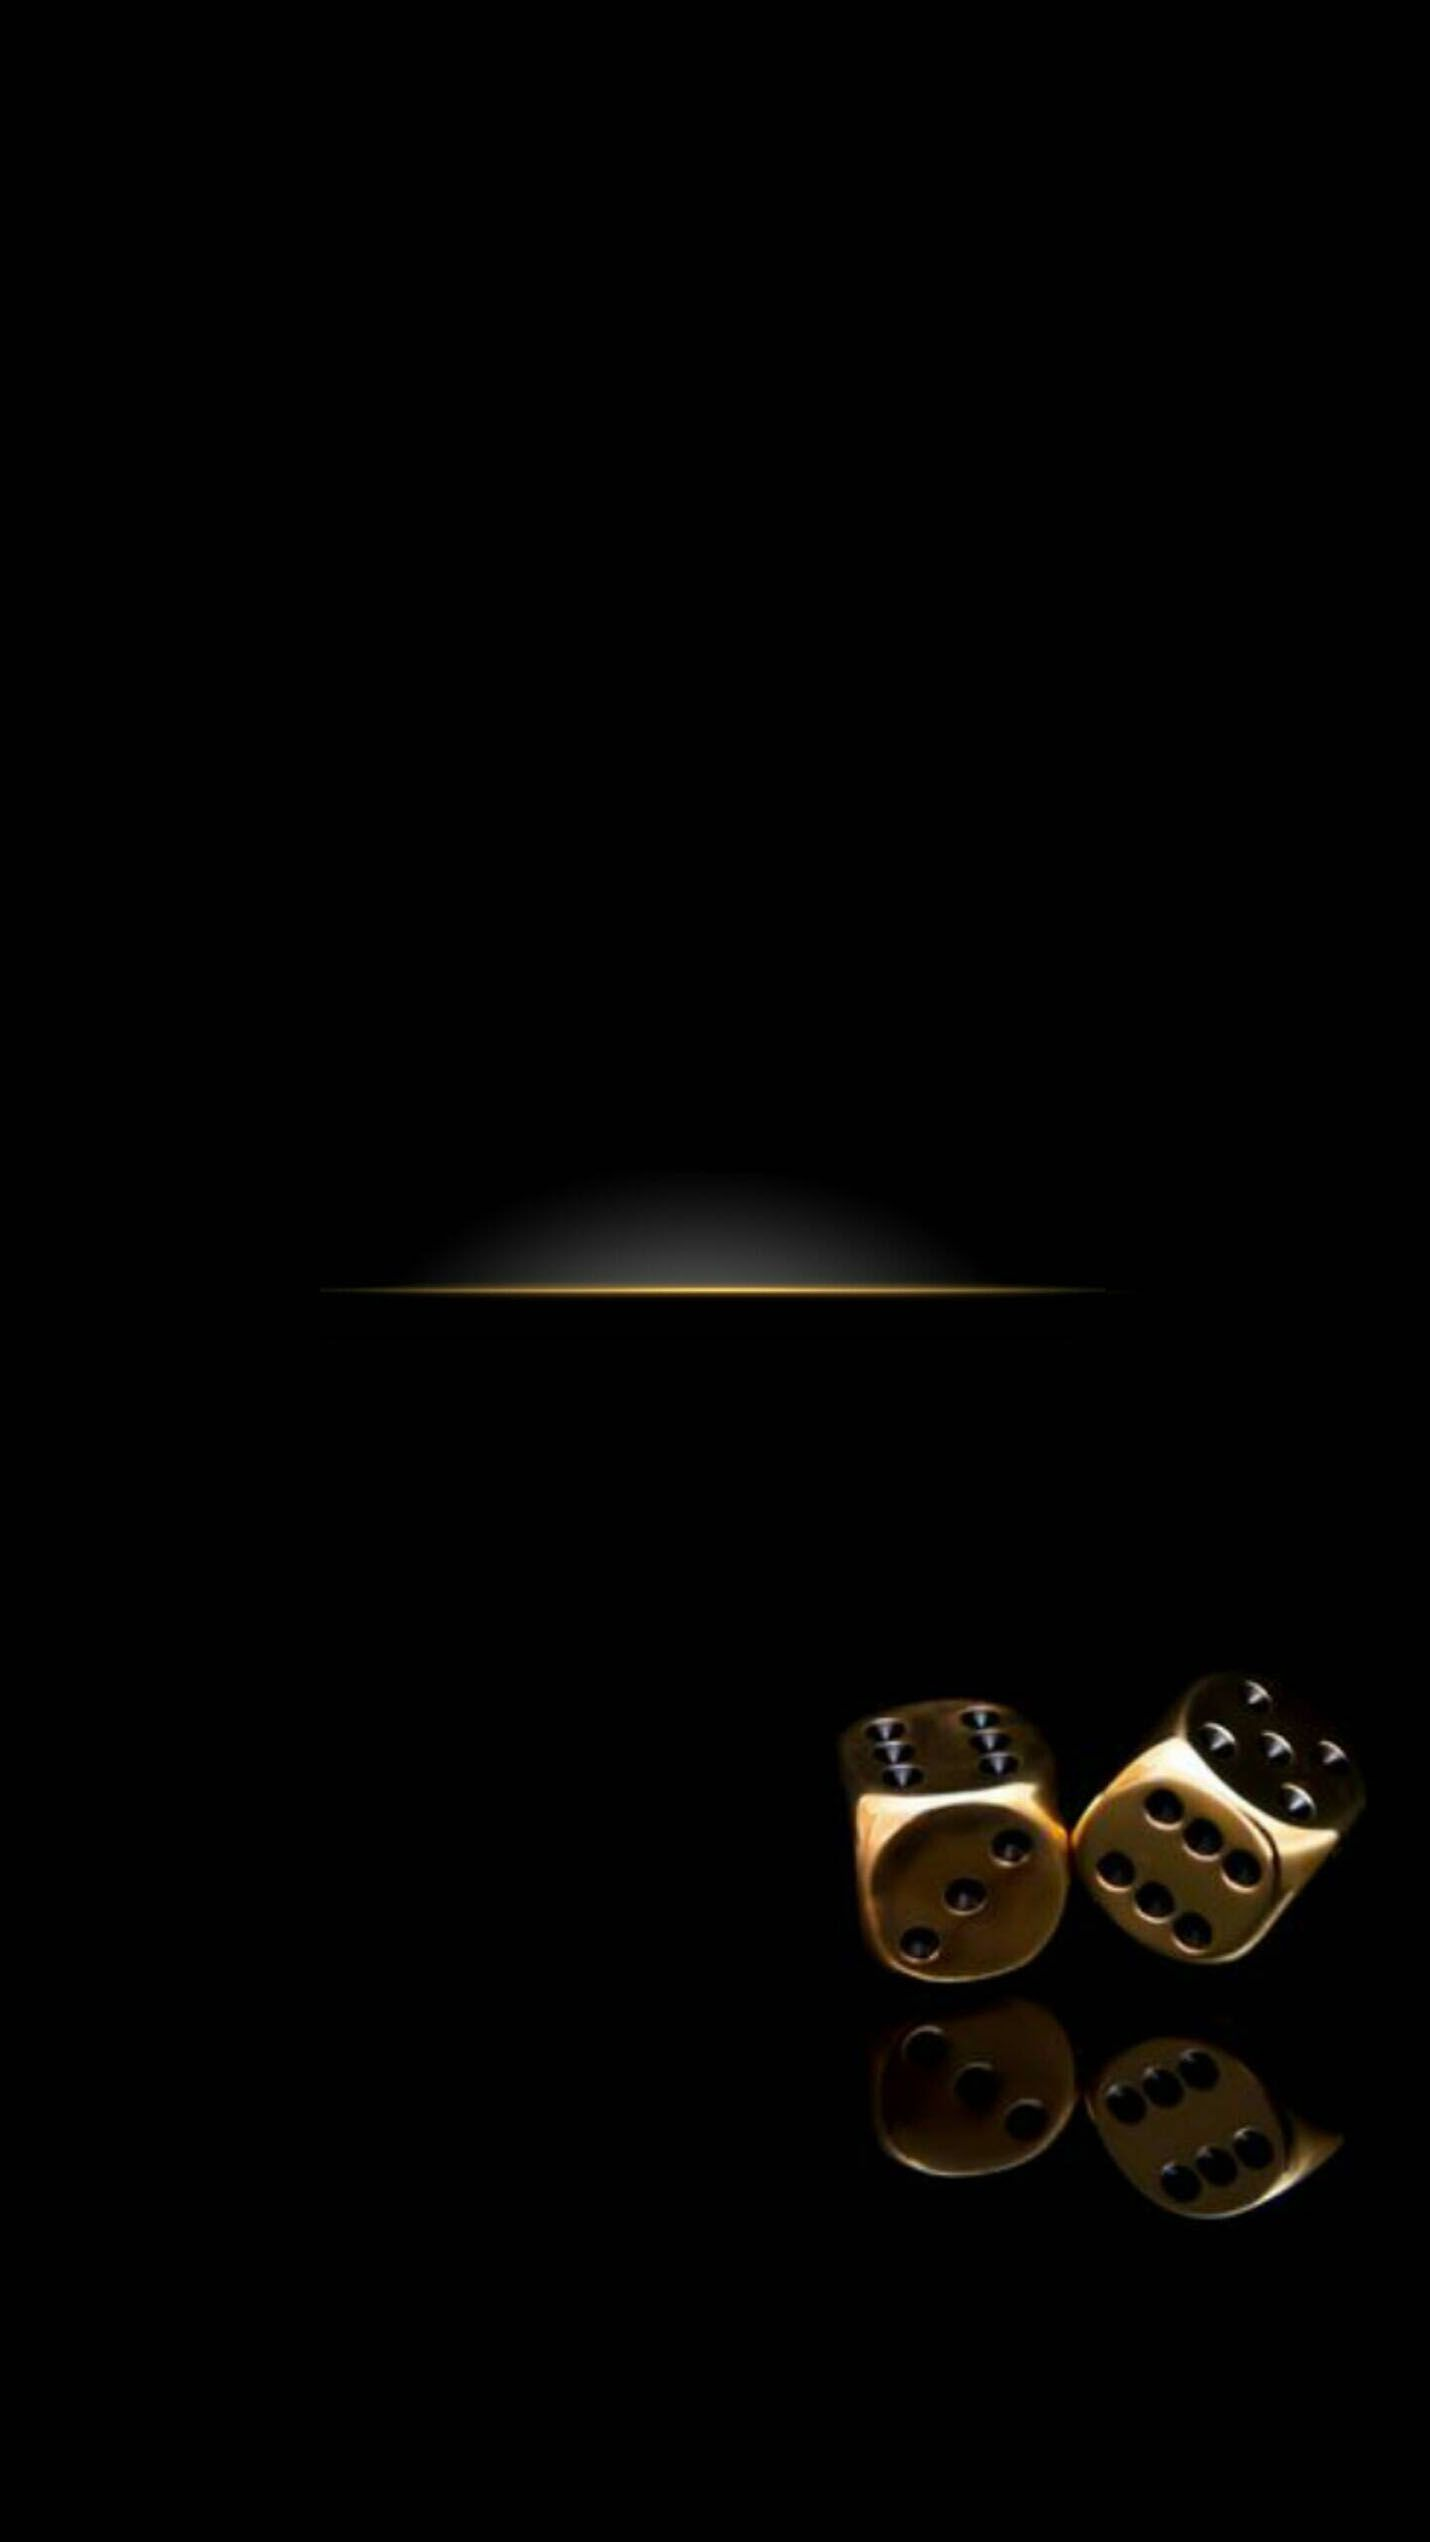 Gold Dice Hd Wallpapers Download Hd In Link Black Wallpaper Iphone Black Phone Background Black Phone Wallpaper